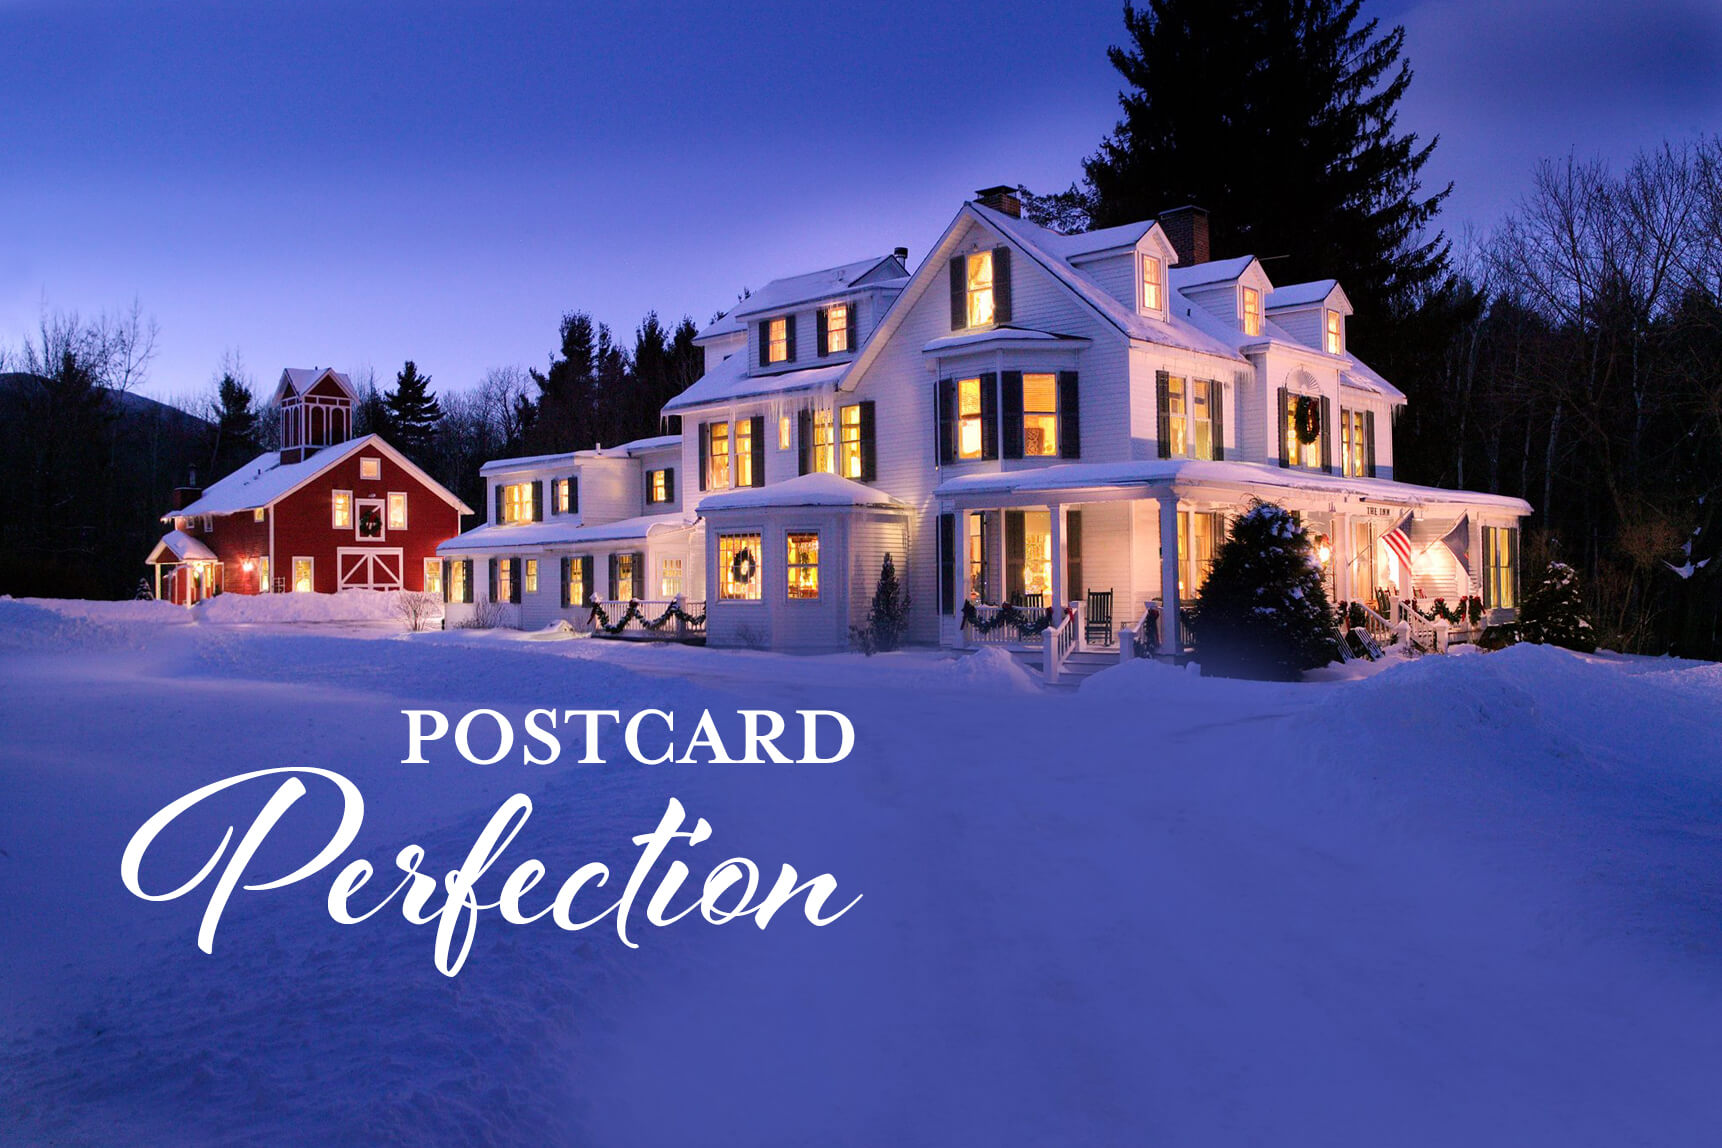 Postcard Perfection in Manchester, Vermont